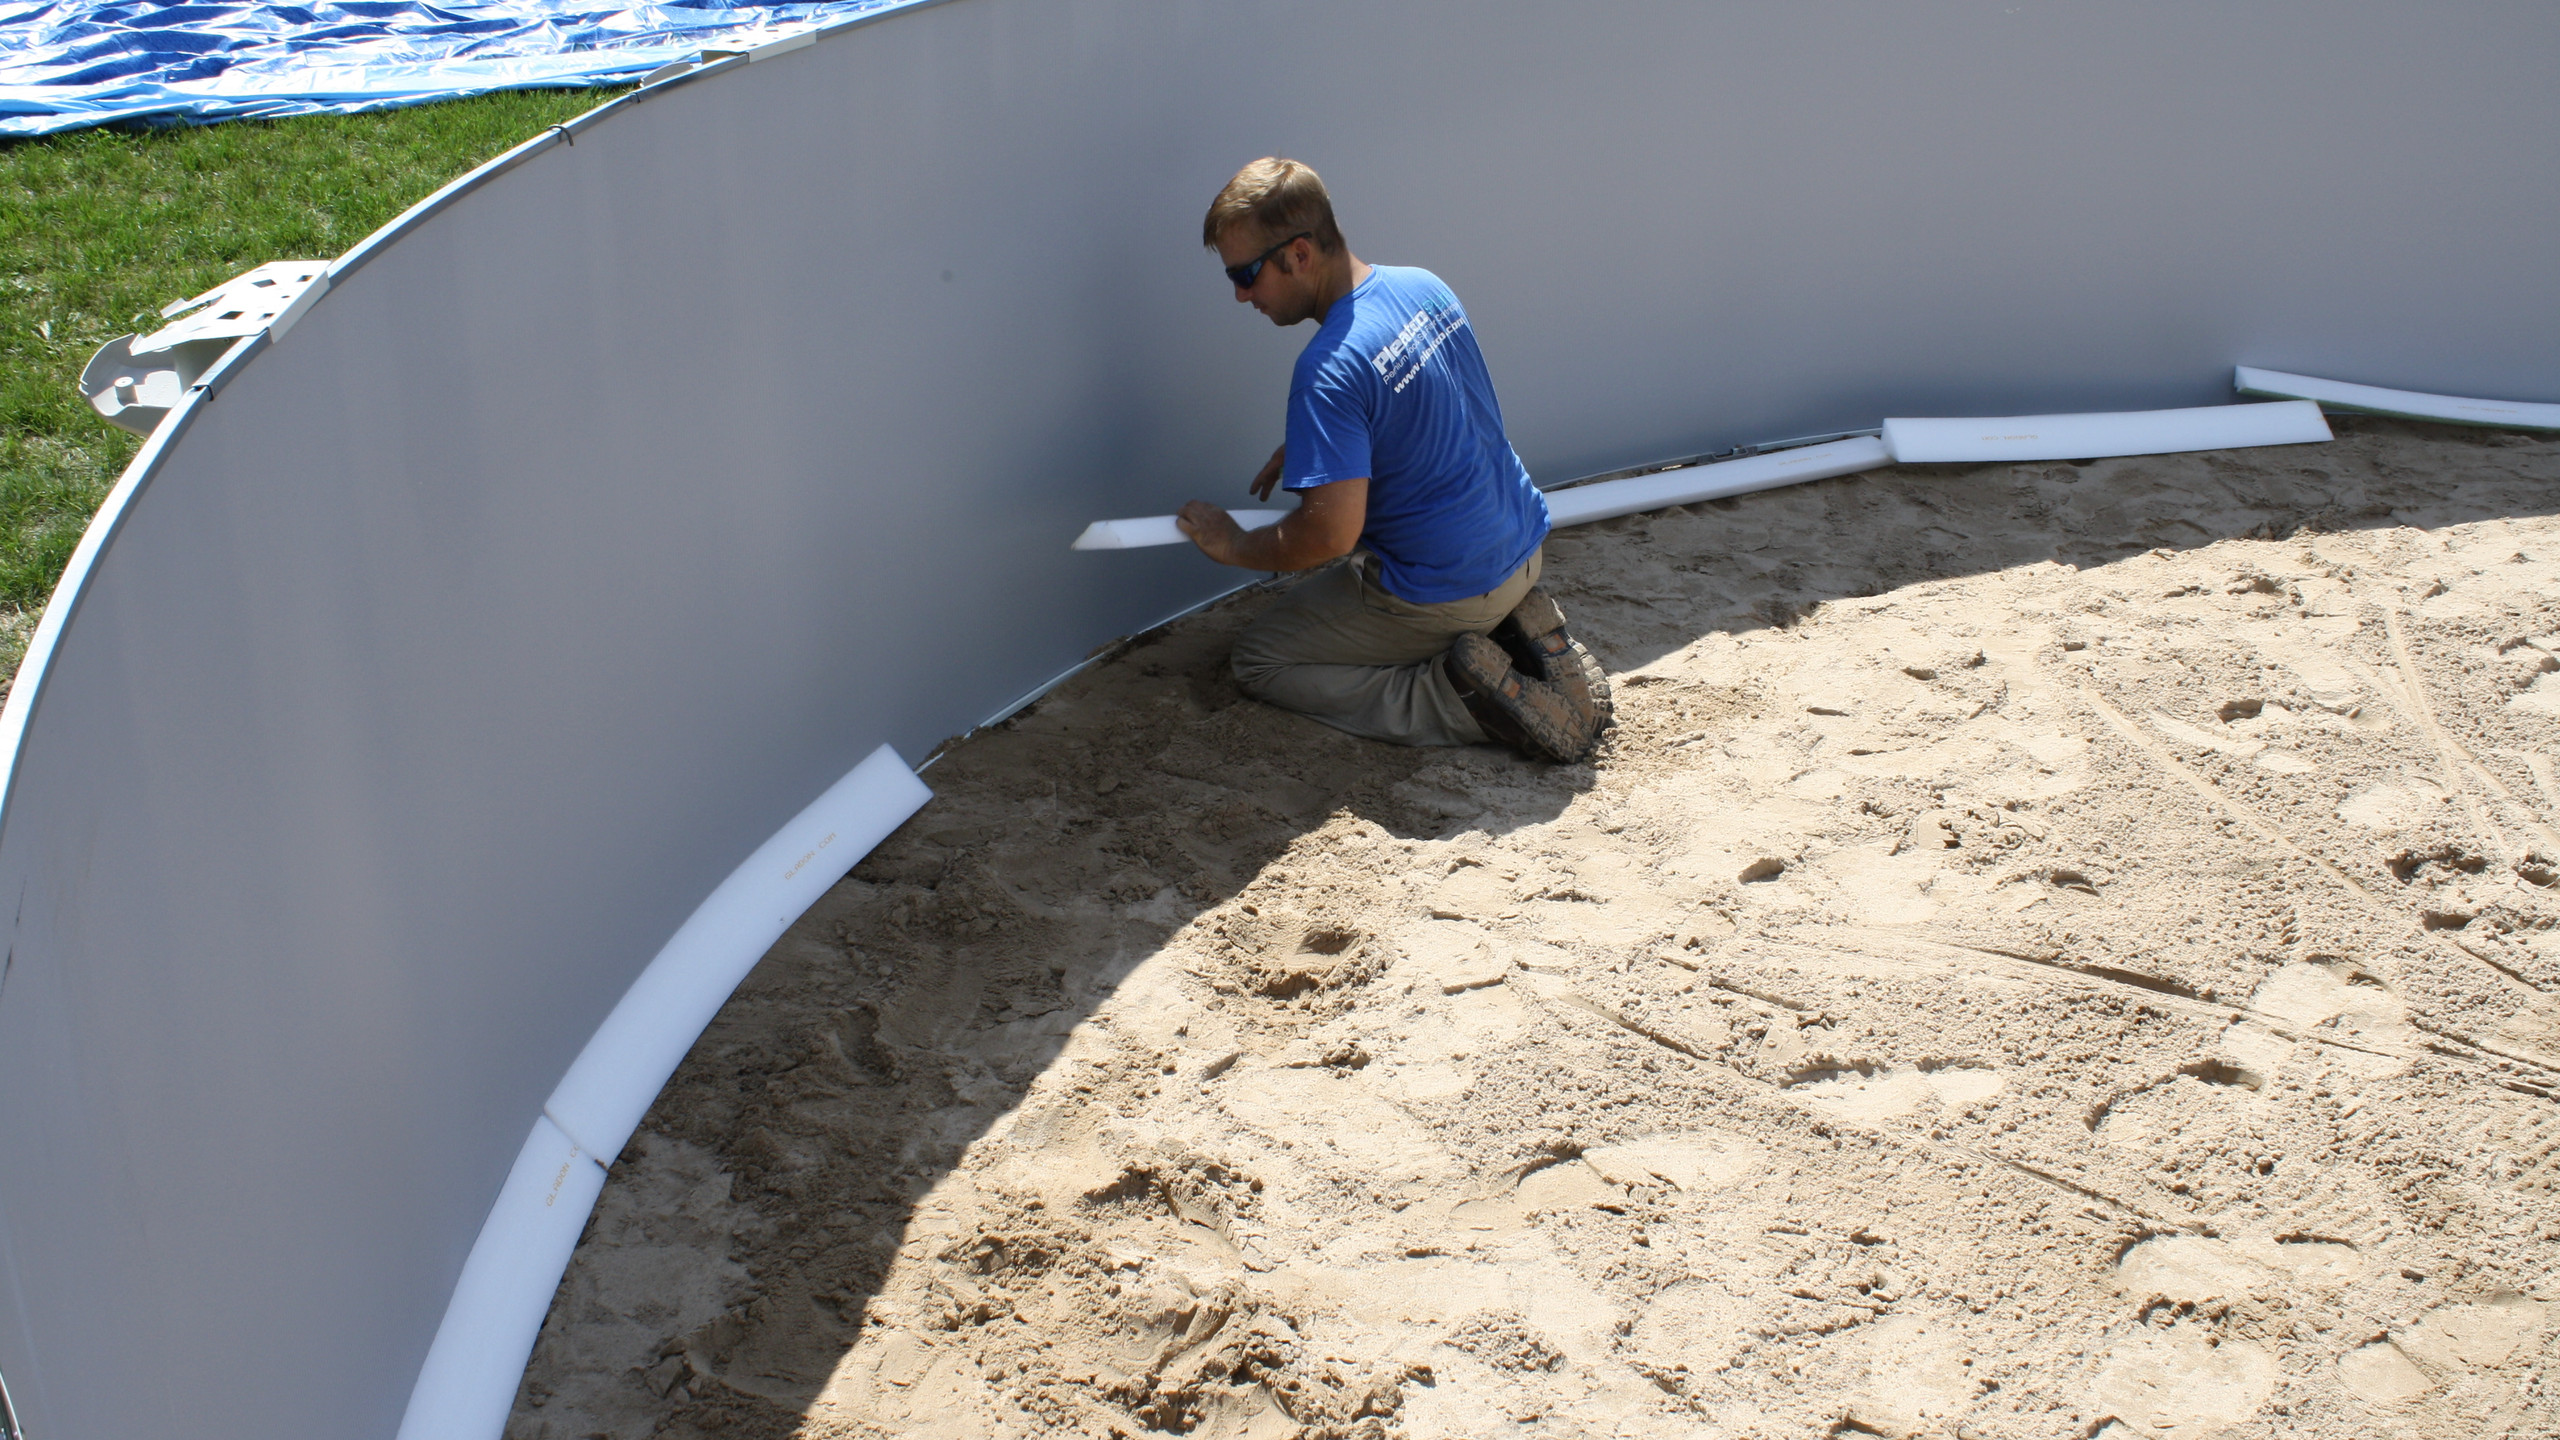 At this point we begin installing Gladon Pool Cove in the bottom corner of the pool.